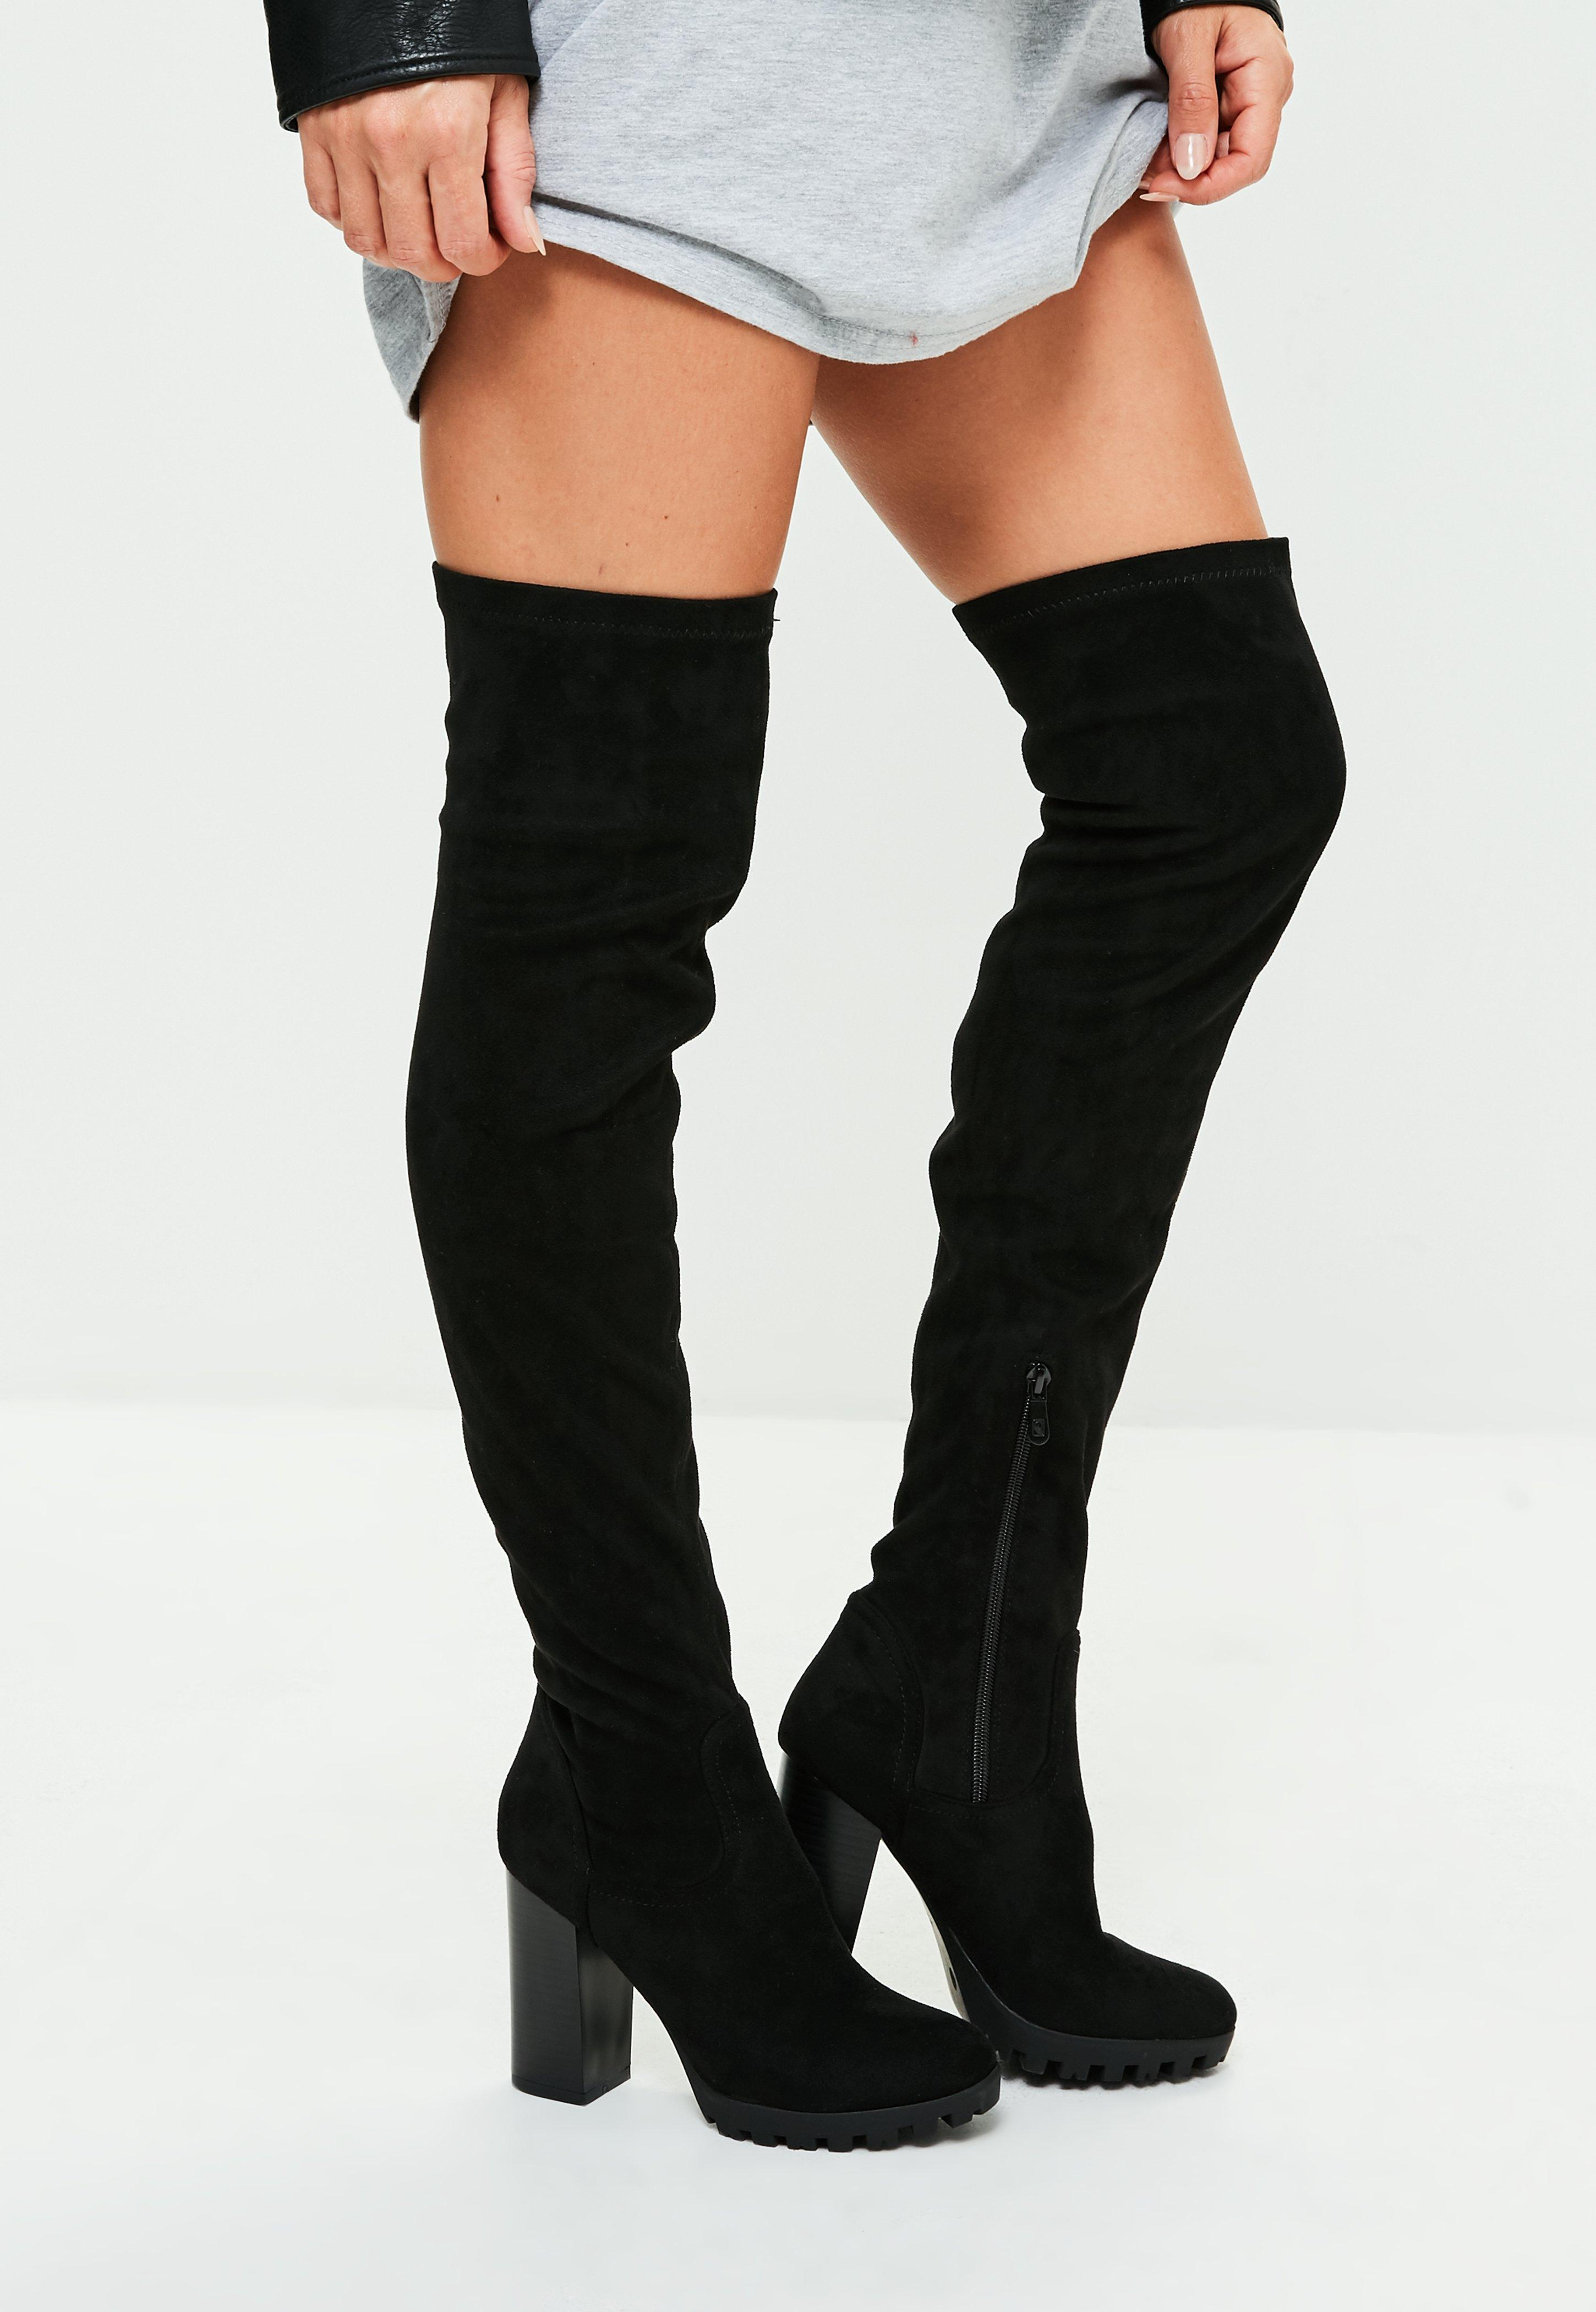 Where Can I Find Over the Knee Boots